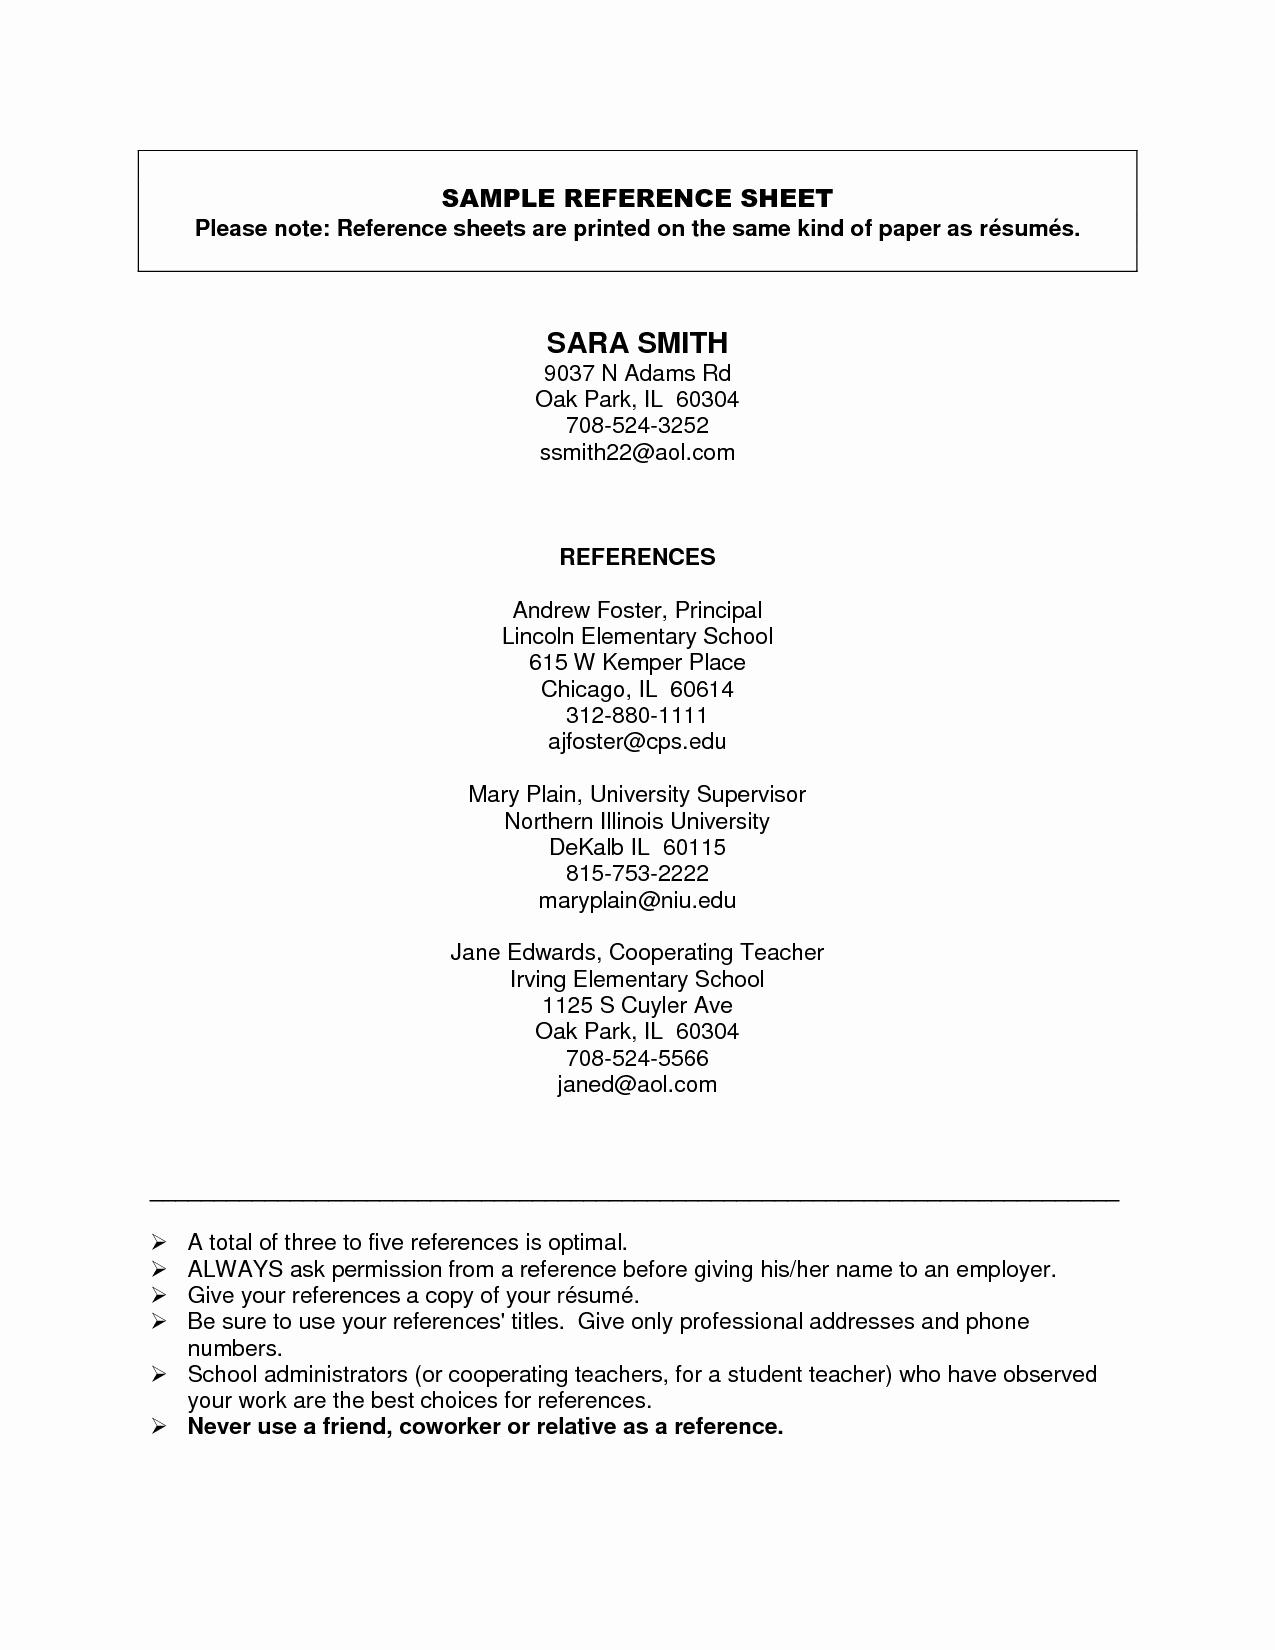 Reference List for A Job Awesome References Sample How to Create A Reference List Sheet for